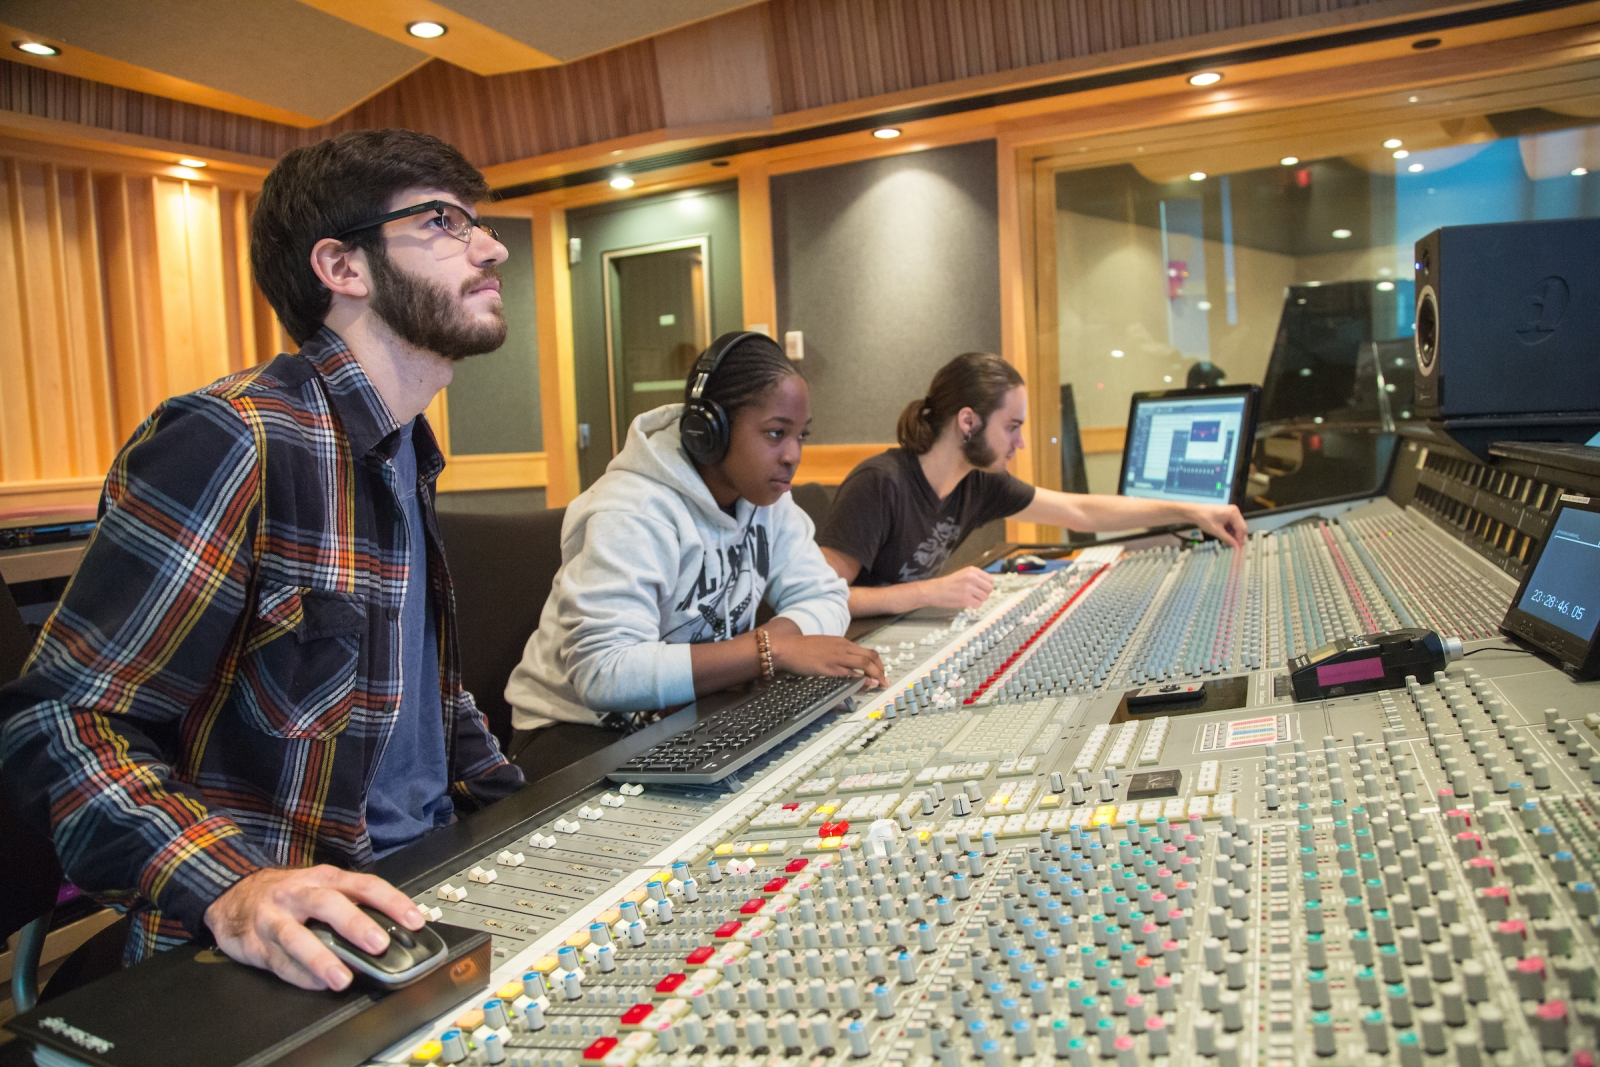 Audio Production: Choosing the Right Training Program at the Best School